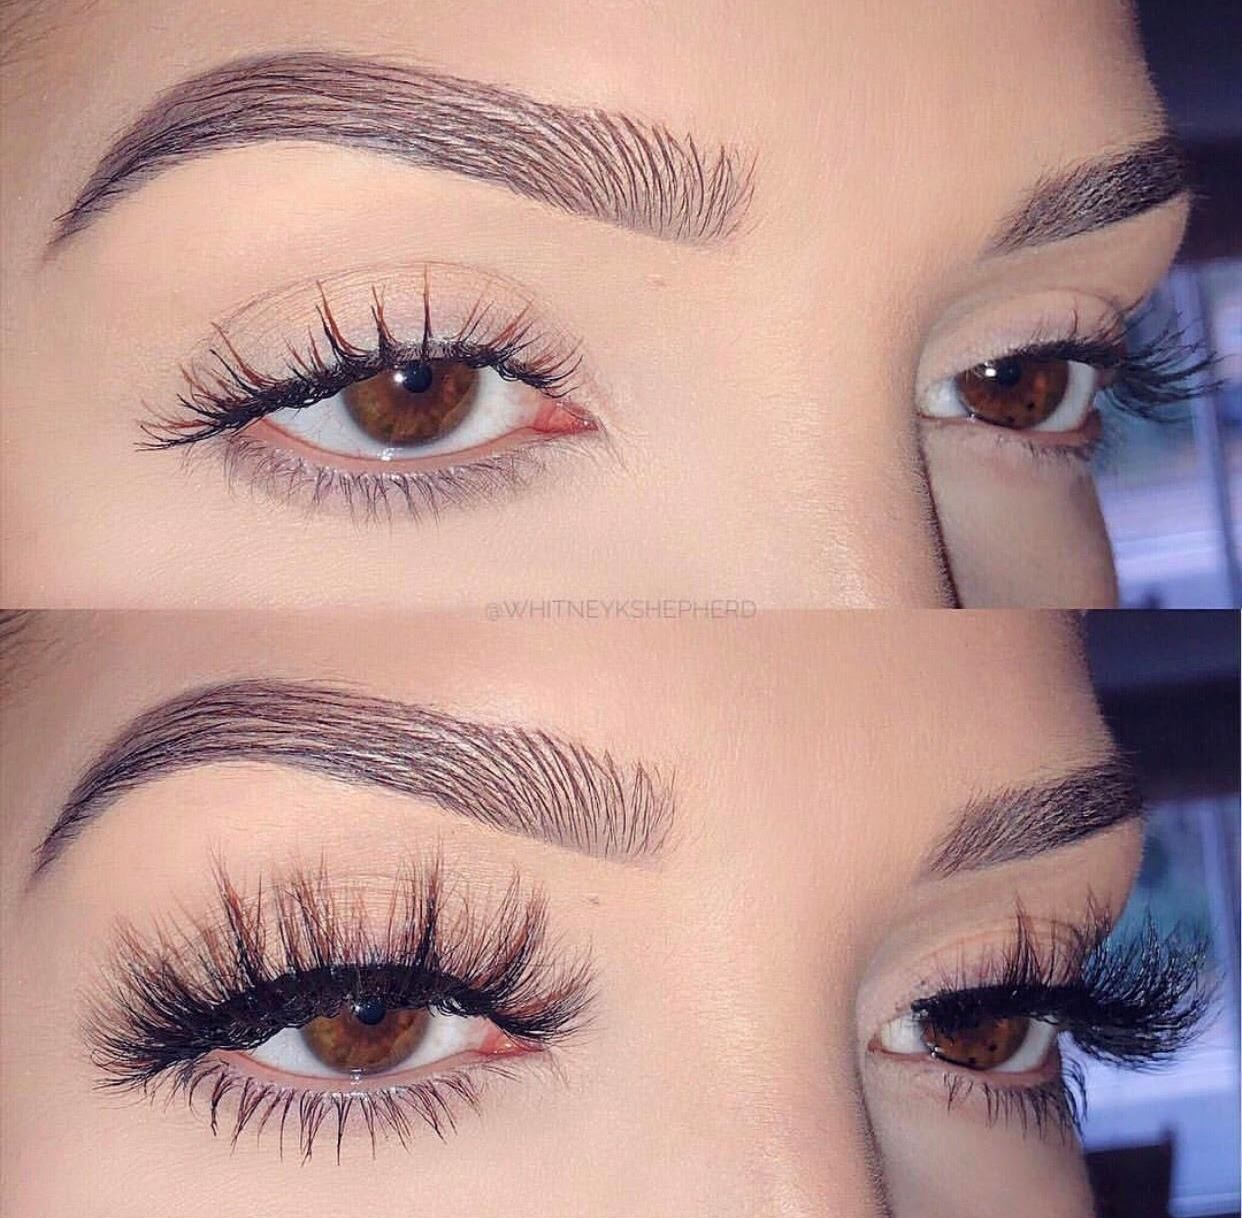 d0fb2efbaa1 Look extra flossy in these ultra glamorous lashes! These lashes have extra  dimension and medium to full volume to instantly amp up any look!